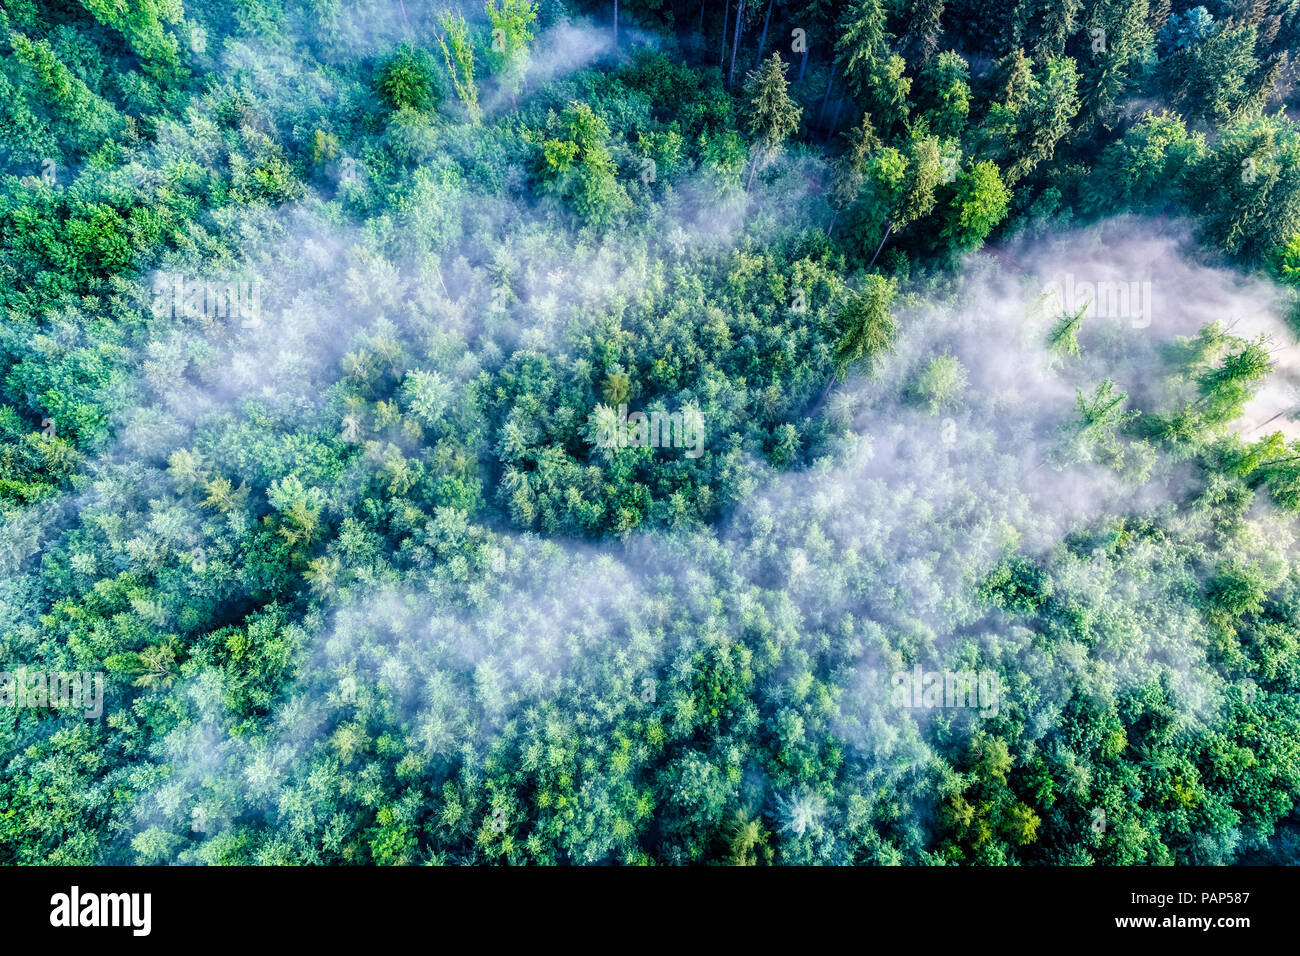 Germany, Baden-Wuerttemberg, Swabian Alb, Aerial view of Schurwald, morning fog - Stock Image